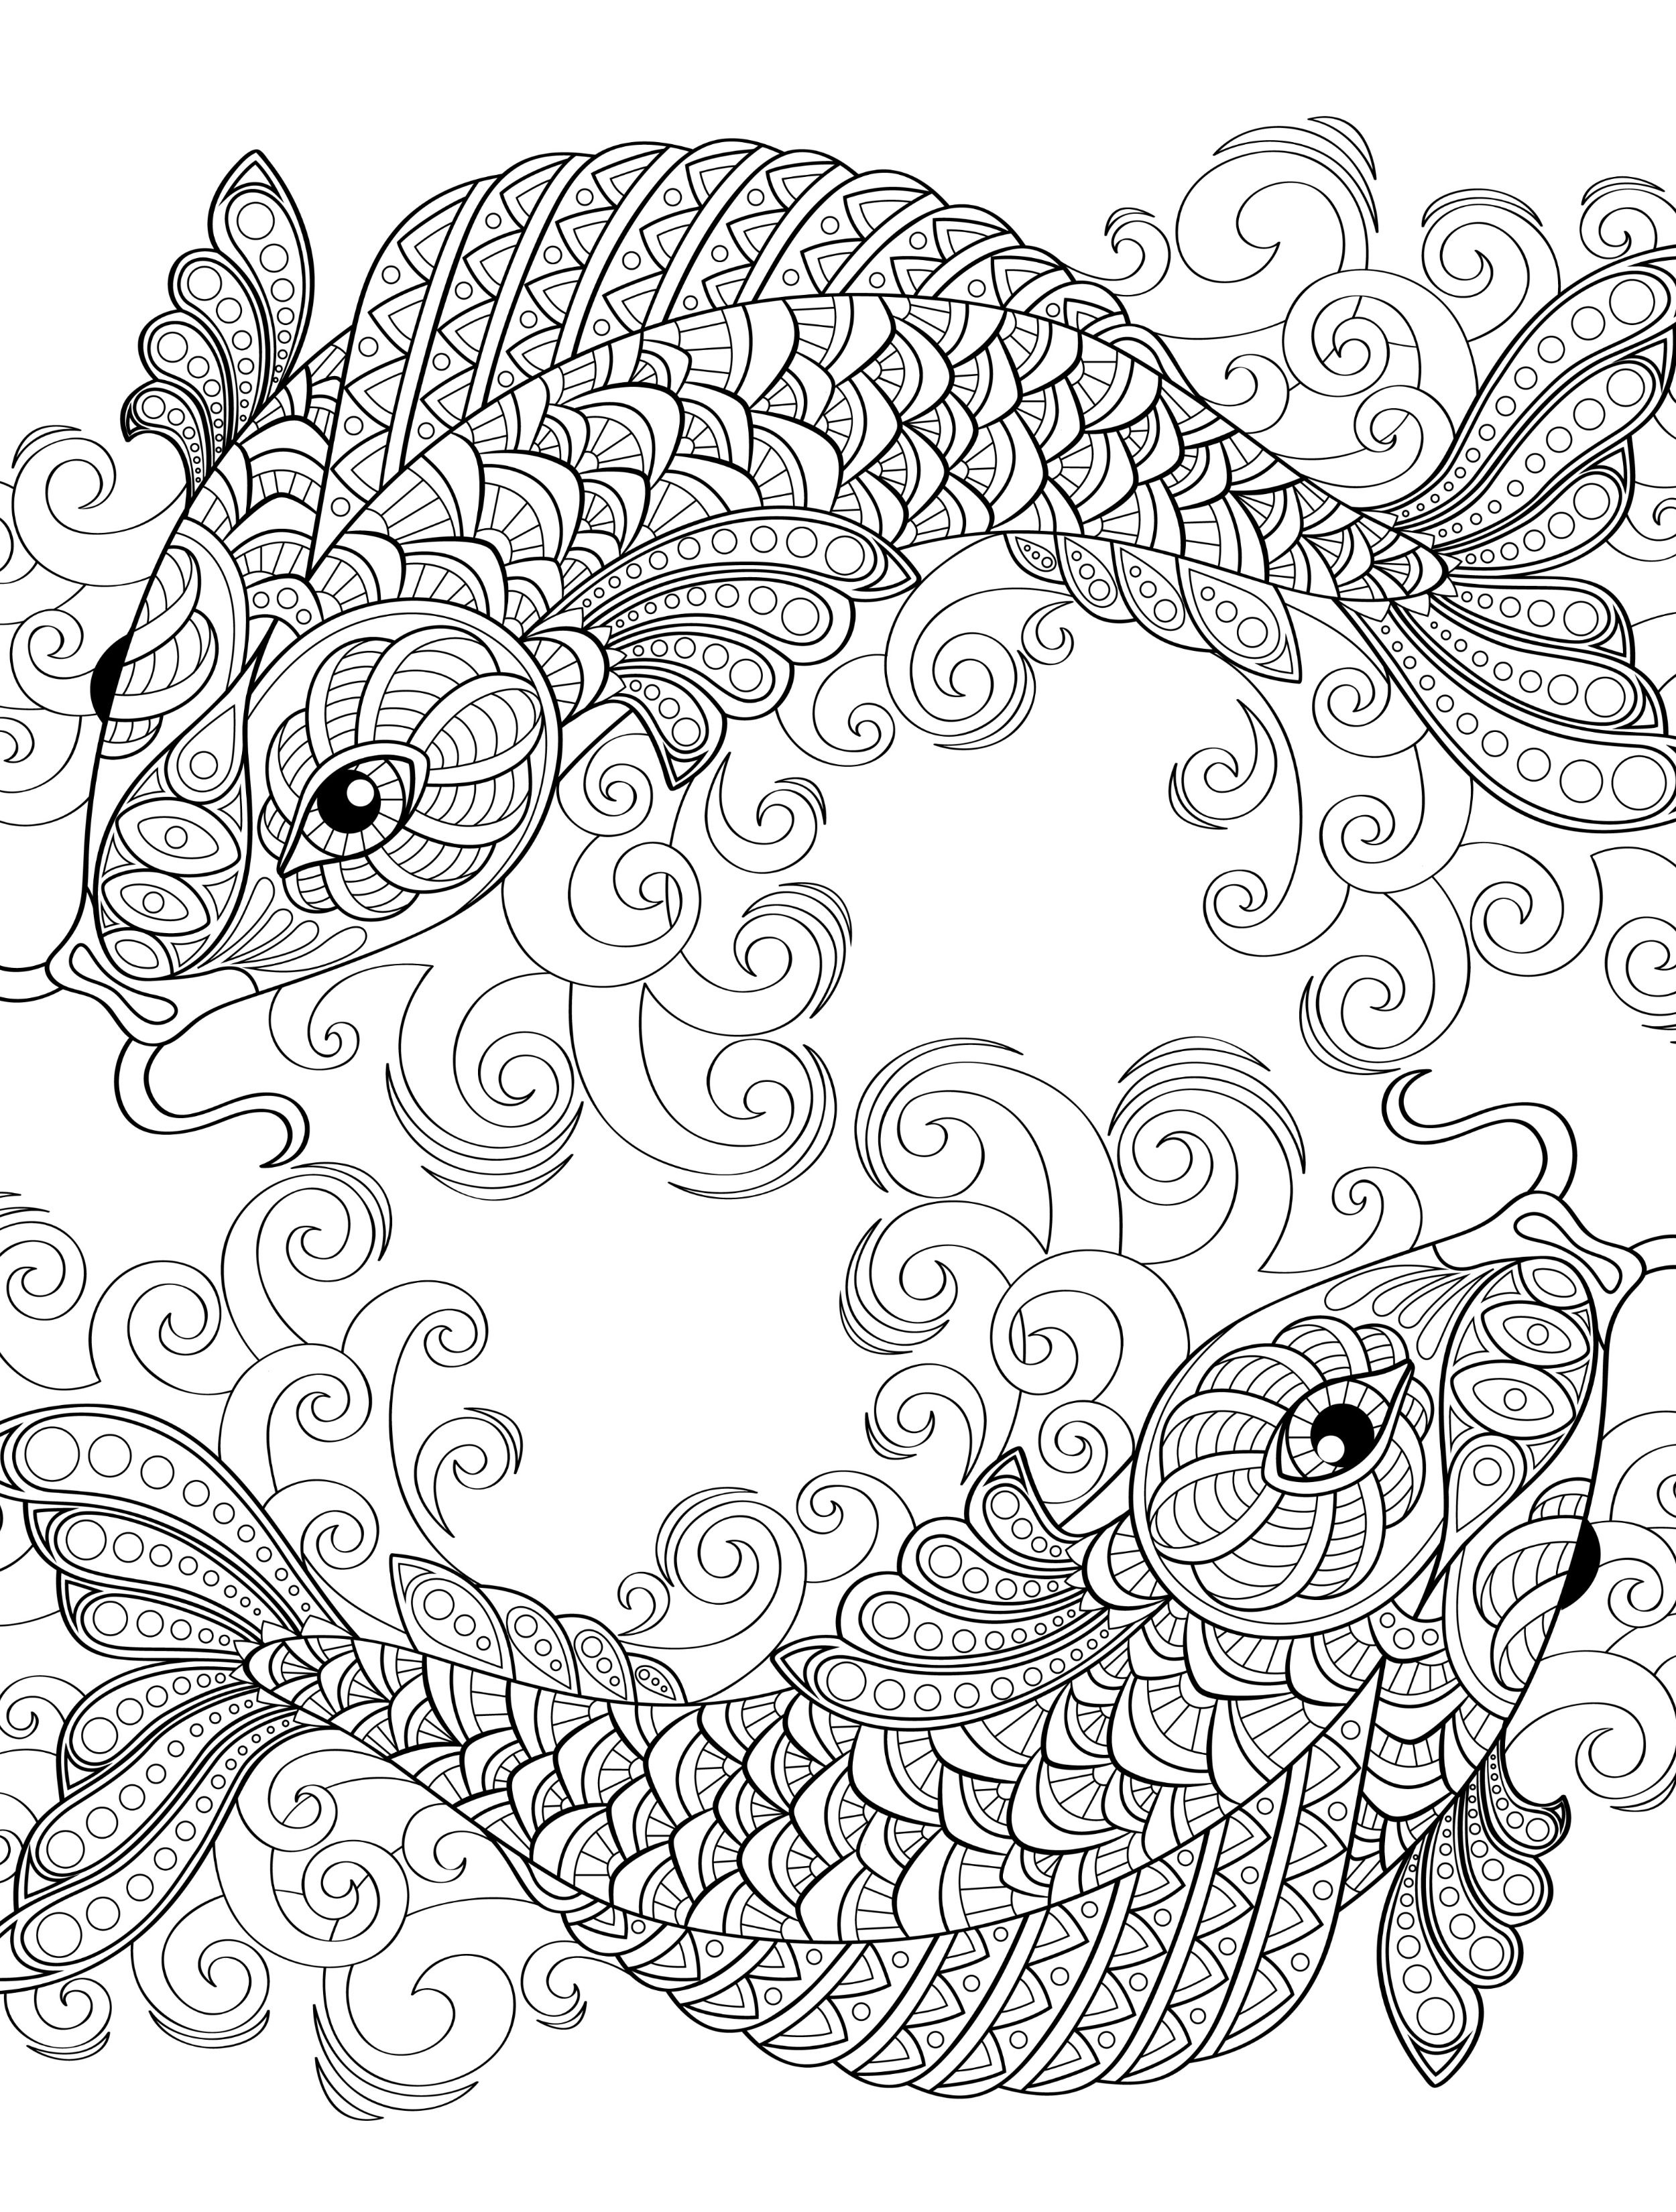 18 Absurdly Whimsical Adult Coloring Pages Skull